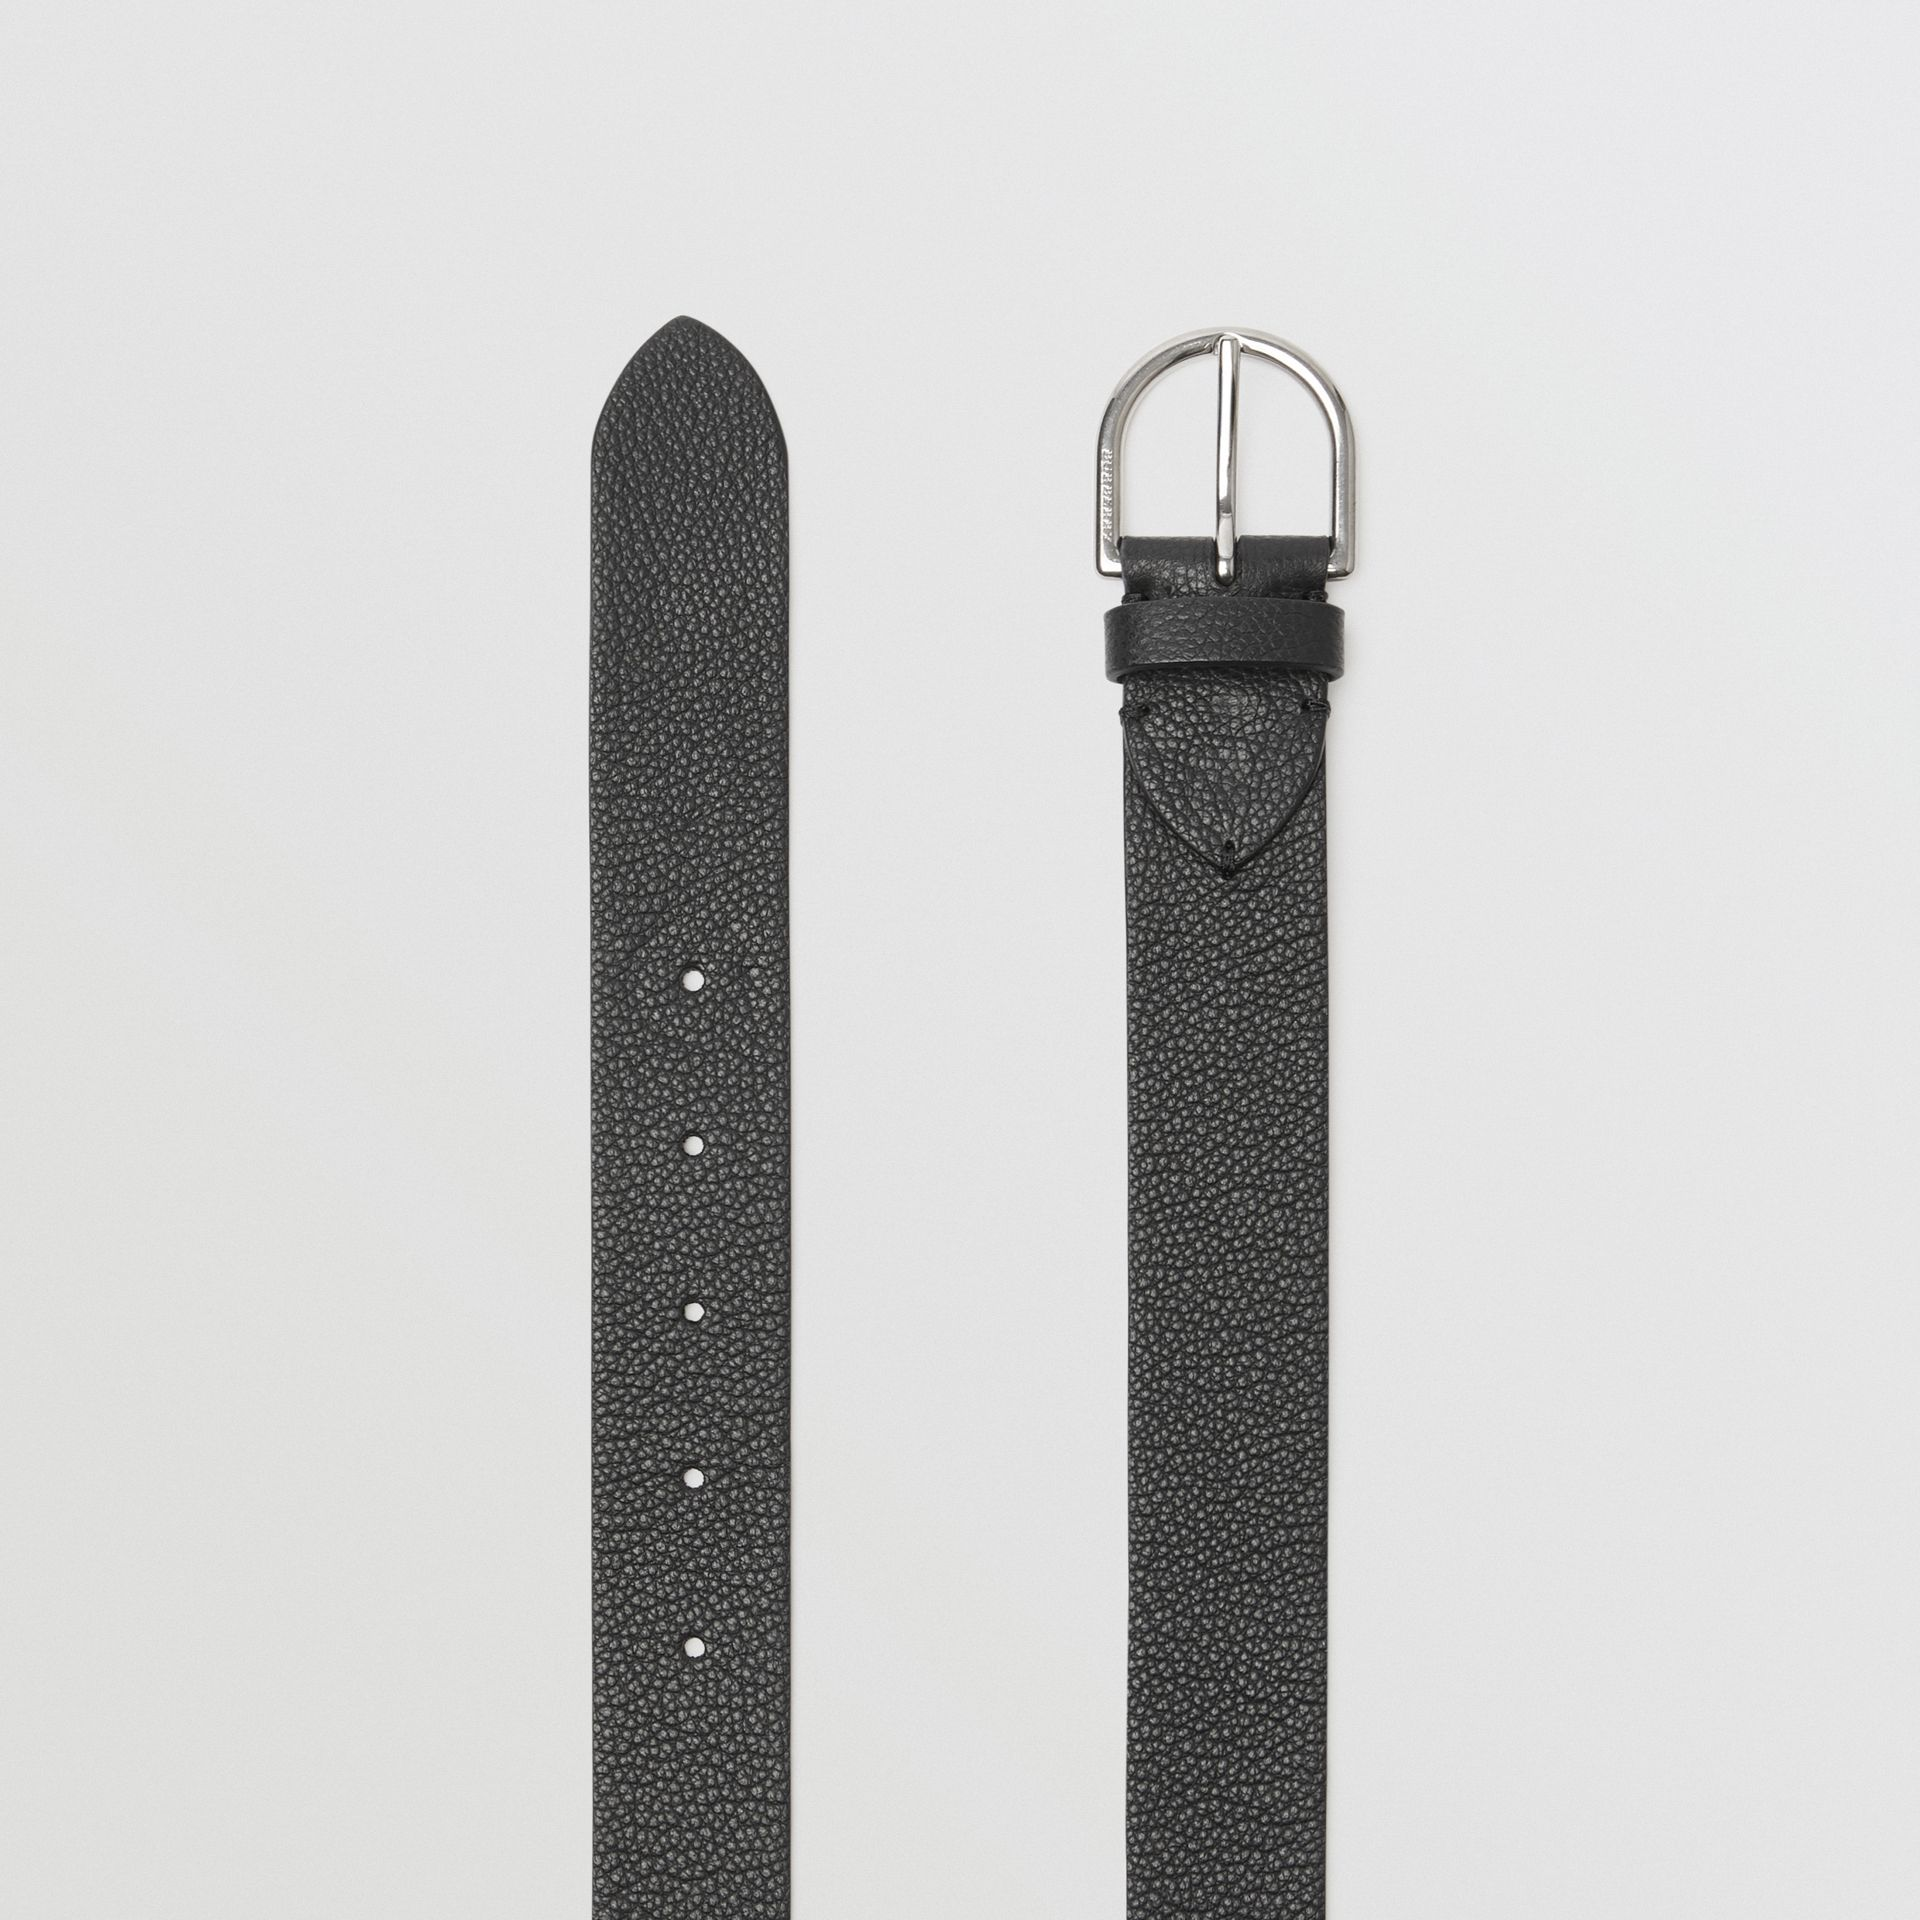 D-shaped Buckle Grainy Leather Belt in Black - Men | Burberry Canada - gallery image 5